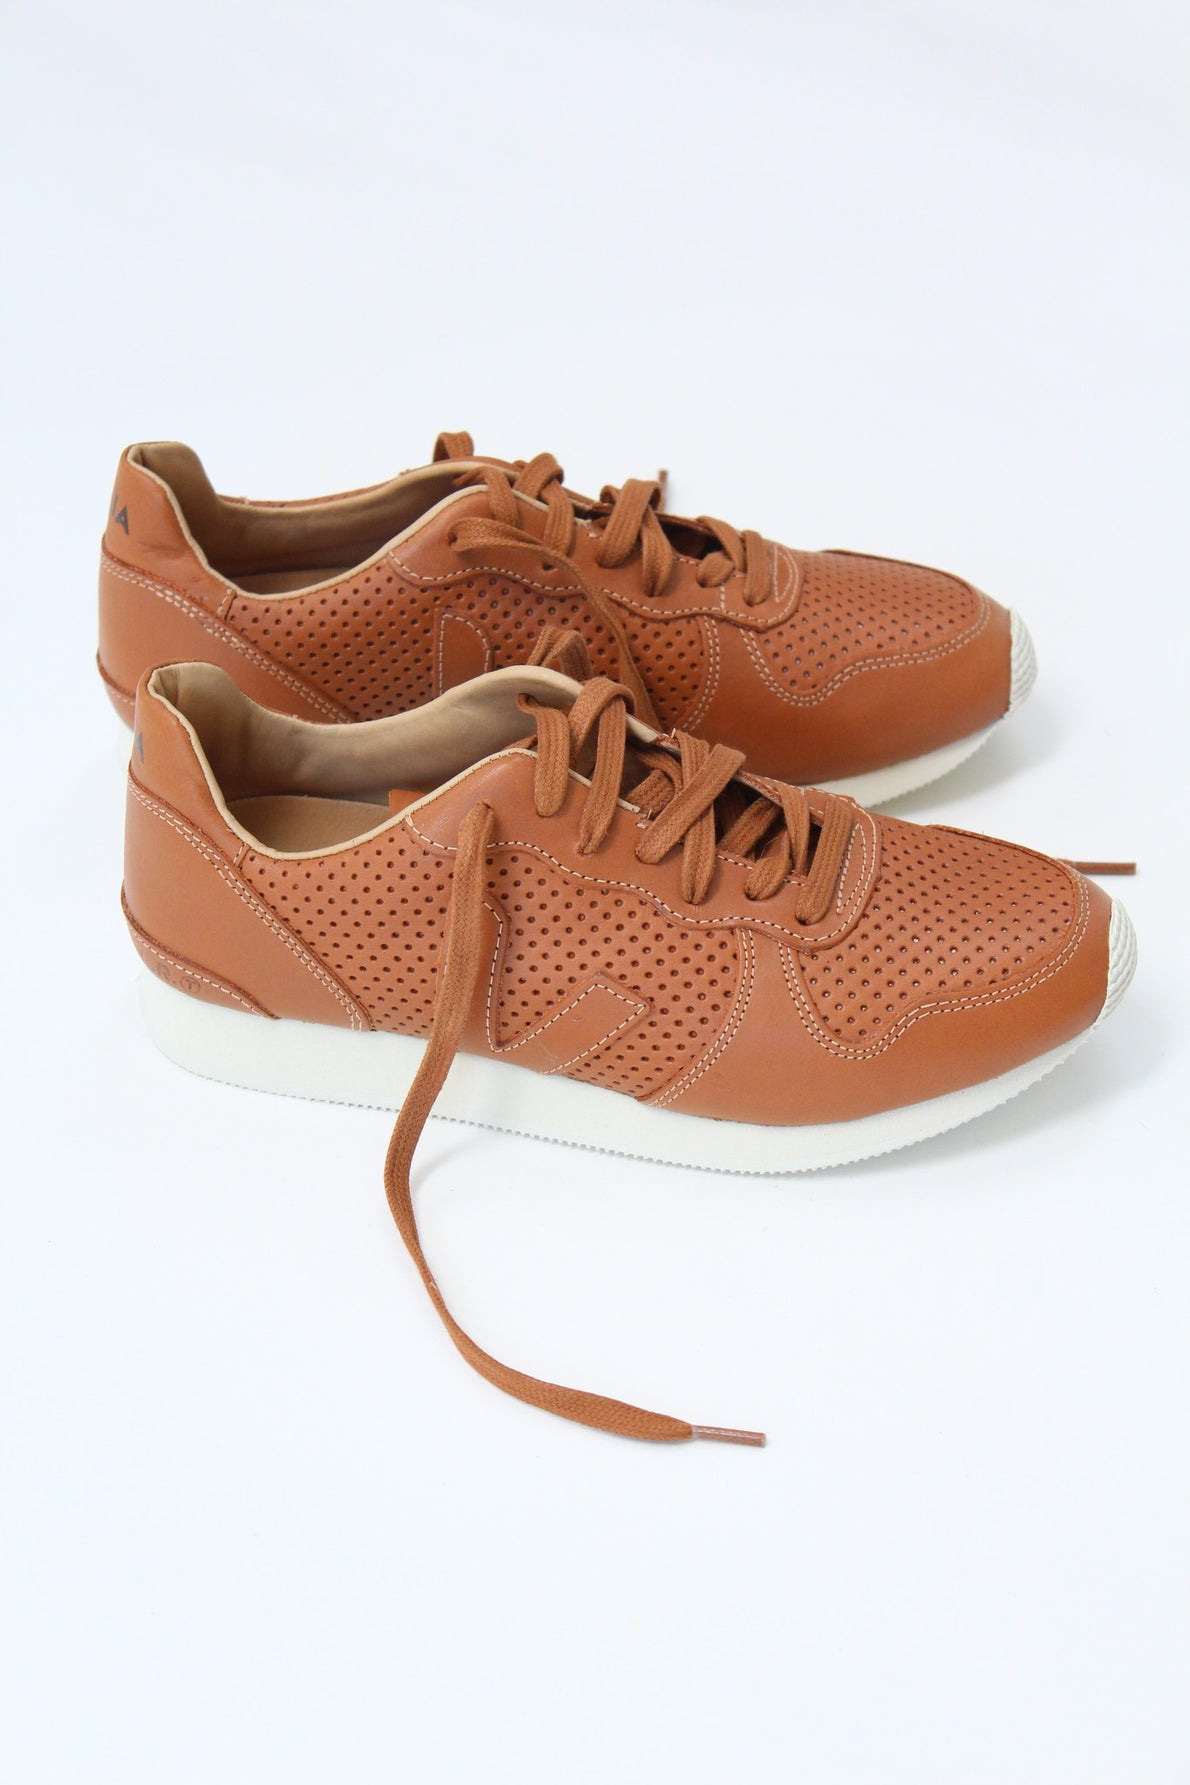 Beklina Veja Holiday Low Top Leather Tuile  Perforated Sneaker